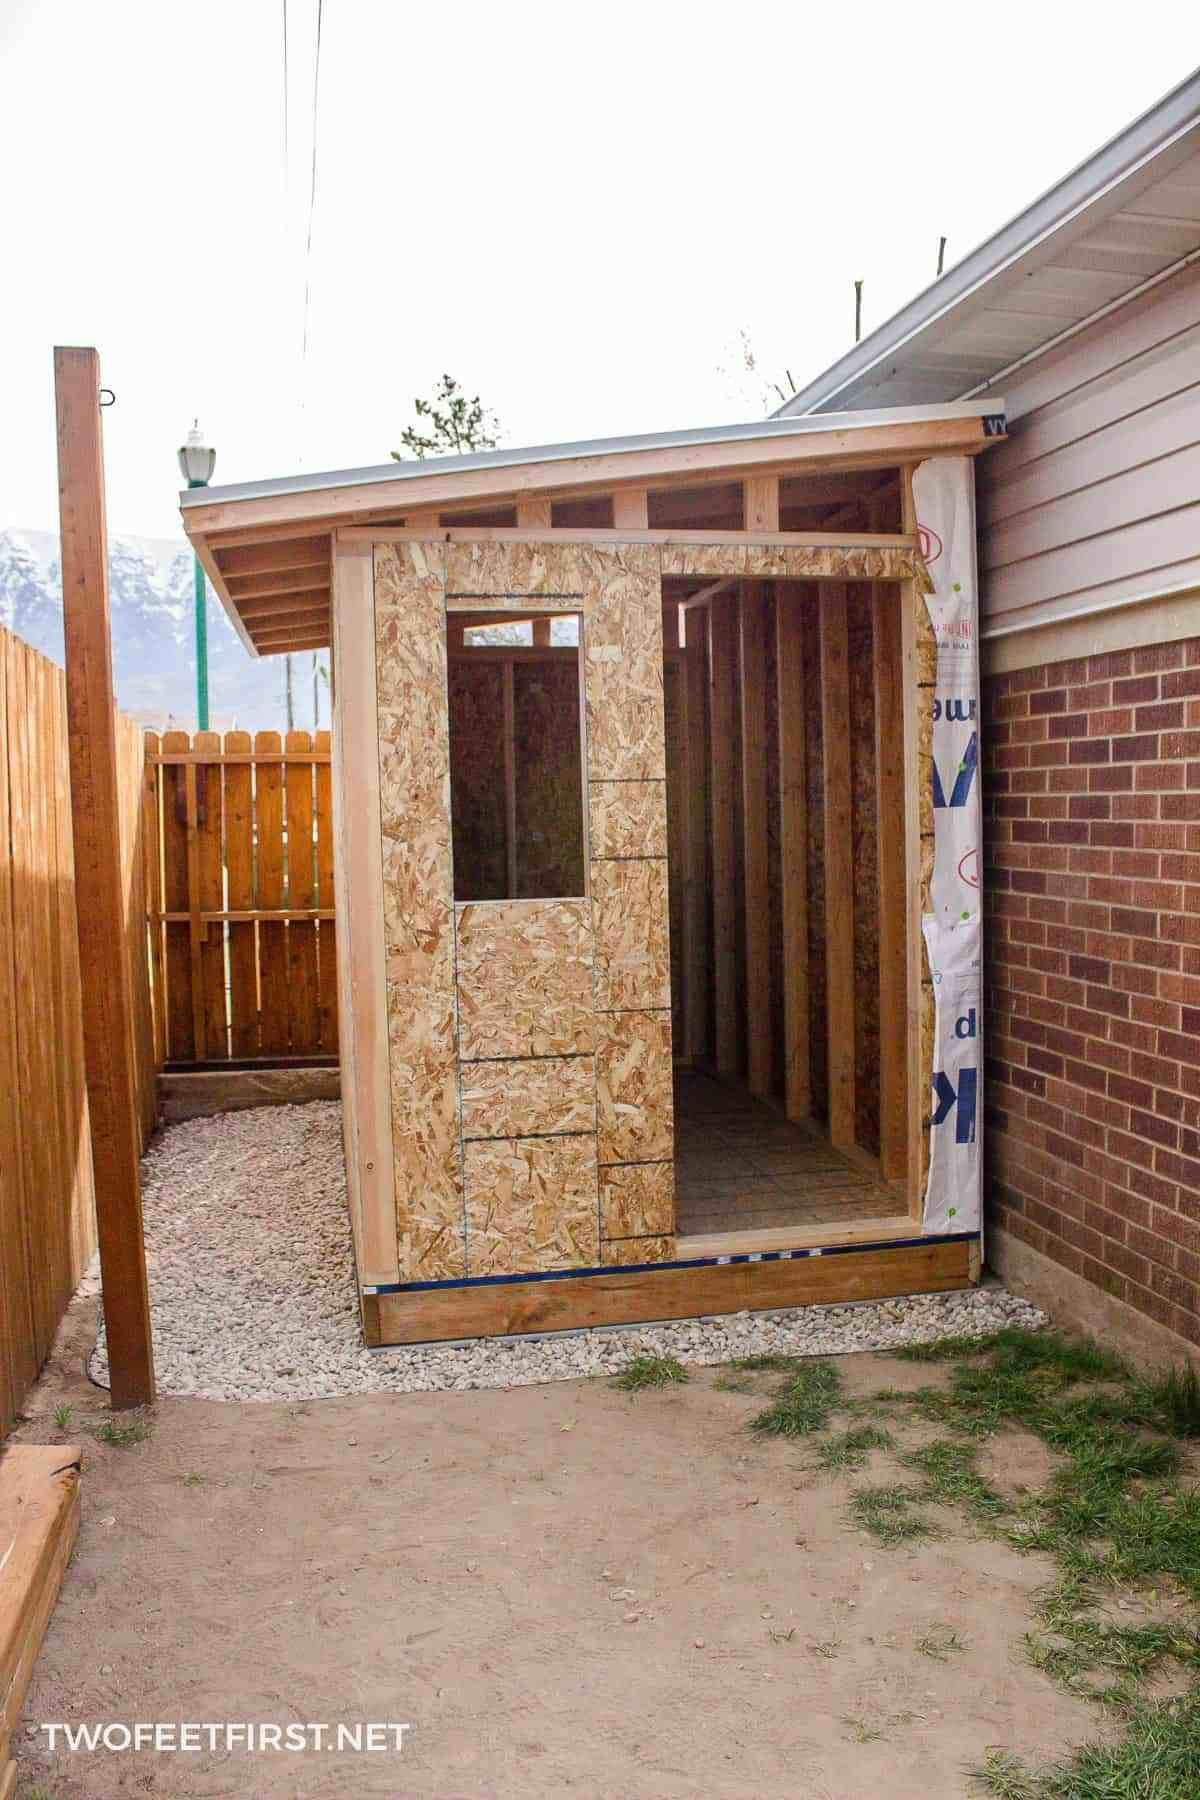 Build A Lean To Roof For A Shed Backyard Sheds Building A Shed